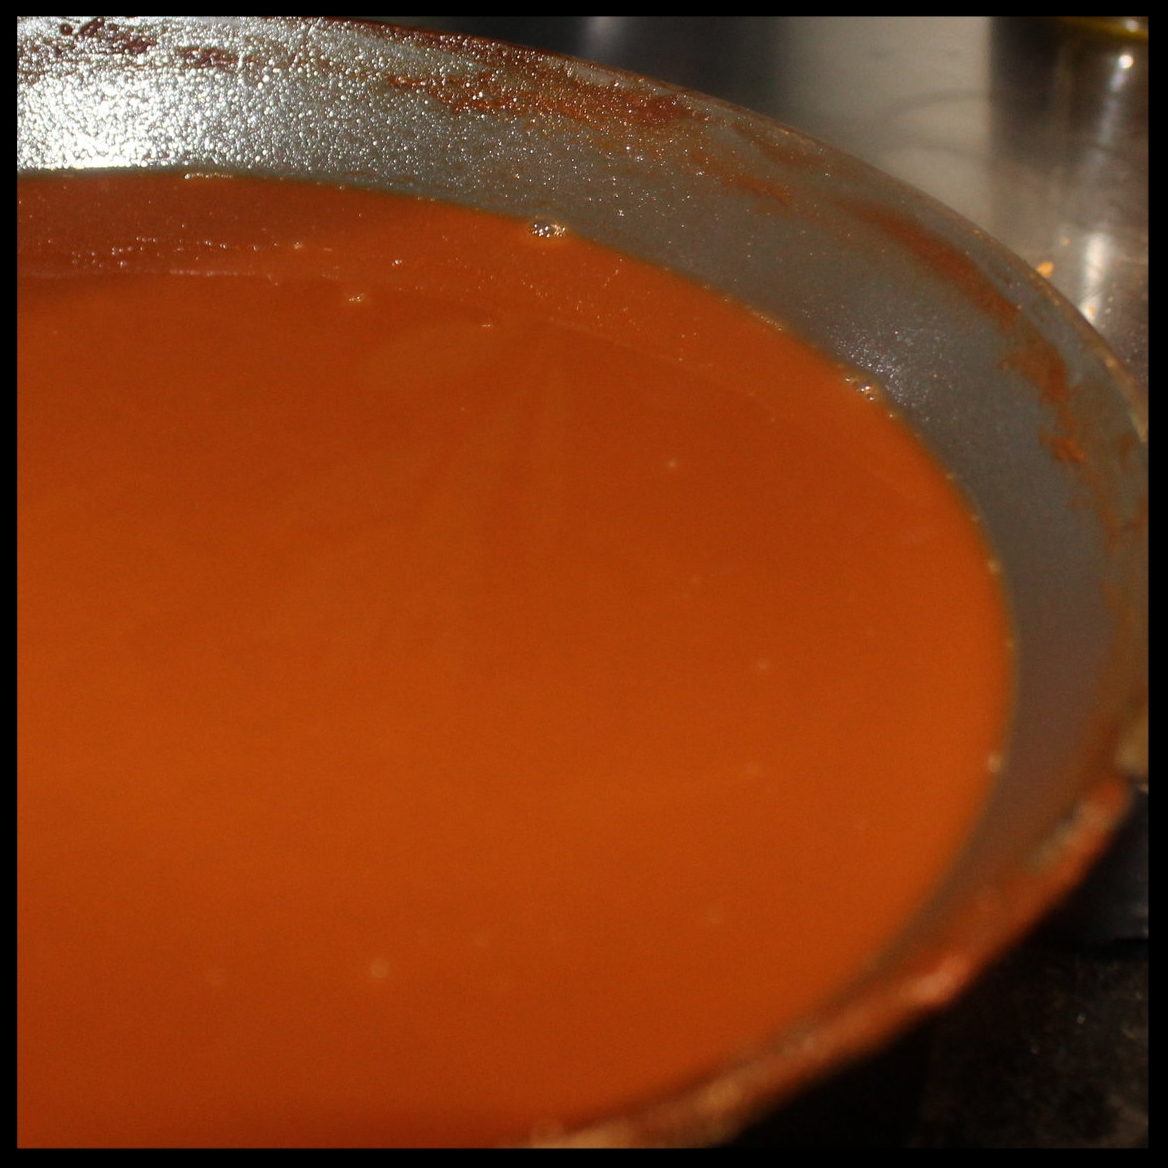 90 minutes:   I combined both roux and continued cooking on the stovetop until the 90 minute mark. This, to me, is the holy grail of roux! - deep, dark, rusty, full of complex nutty aromas. Let it cool for a few hours in the fridge and then freeze in ice cube trays for future use. You'll have an ever ready source of flavor for any soups, stews, meaty sauces or gumbos you create!